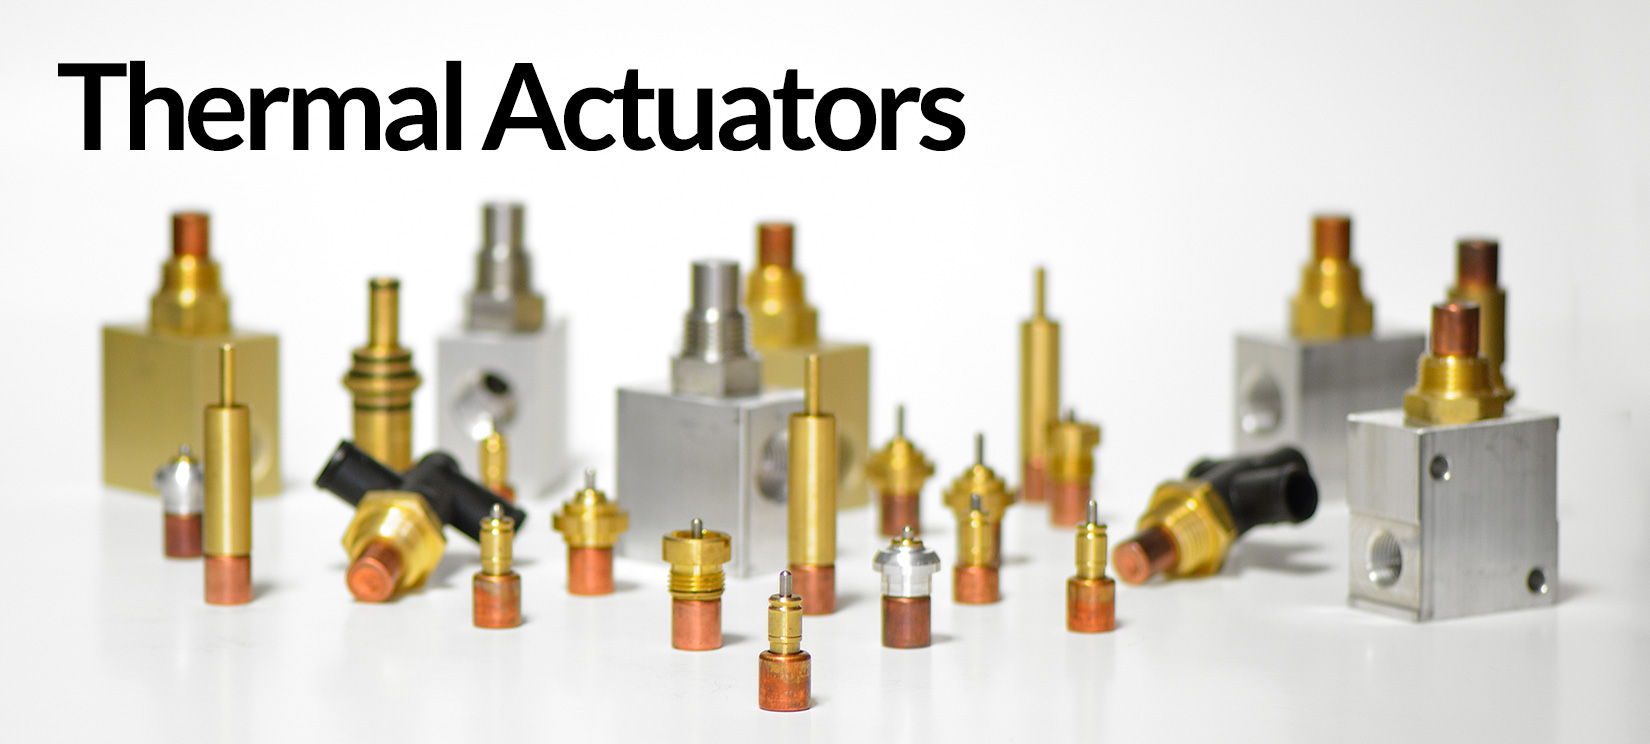 Thermal Actuators and Thermostatic Products